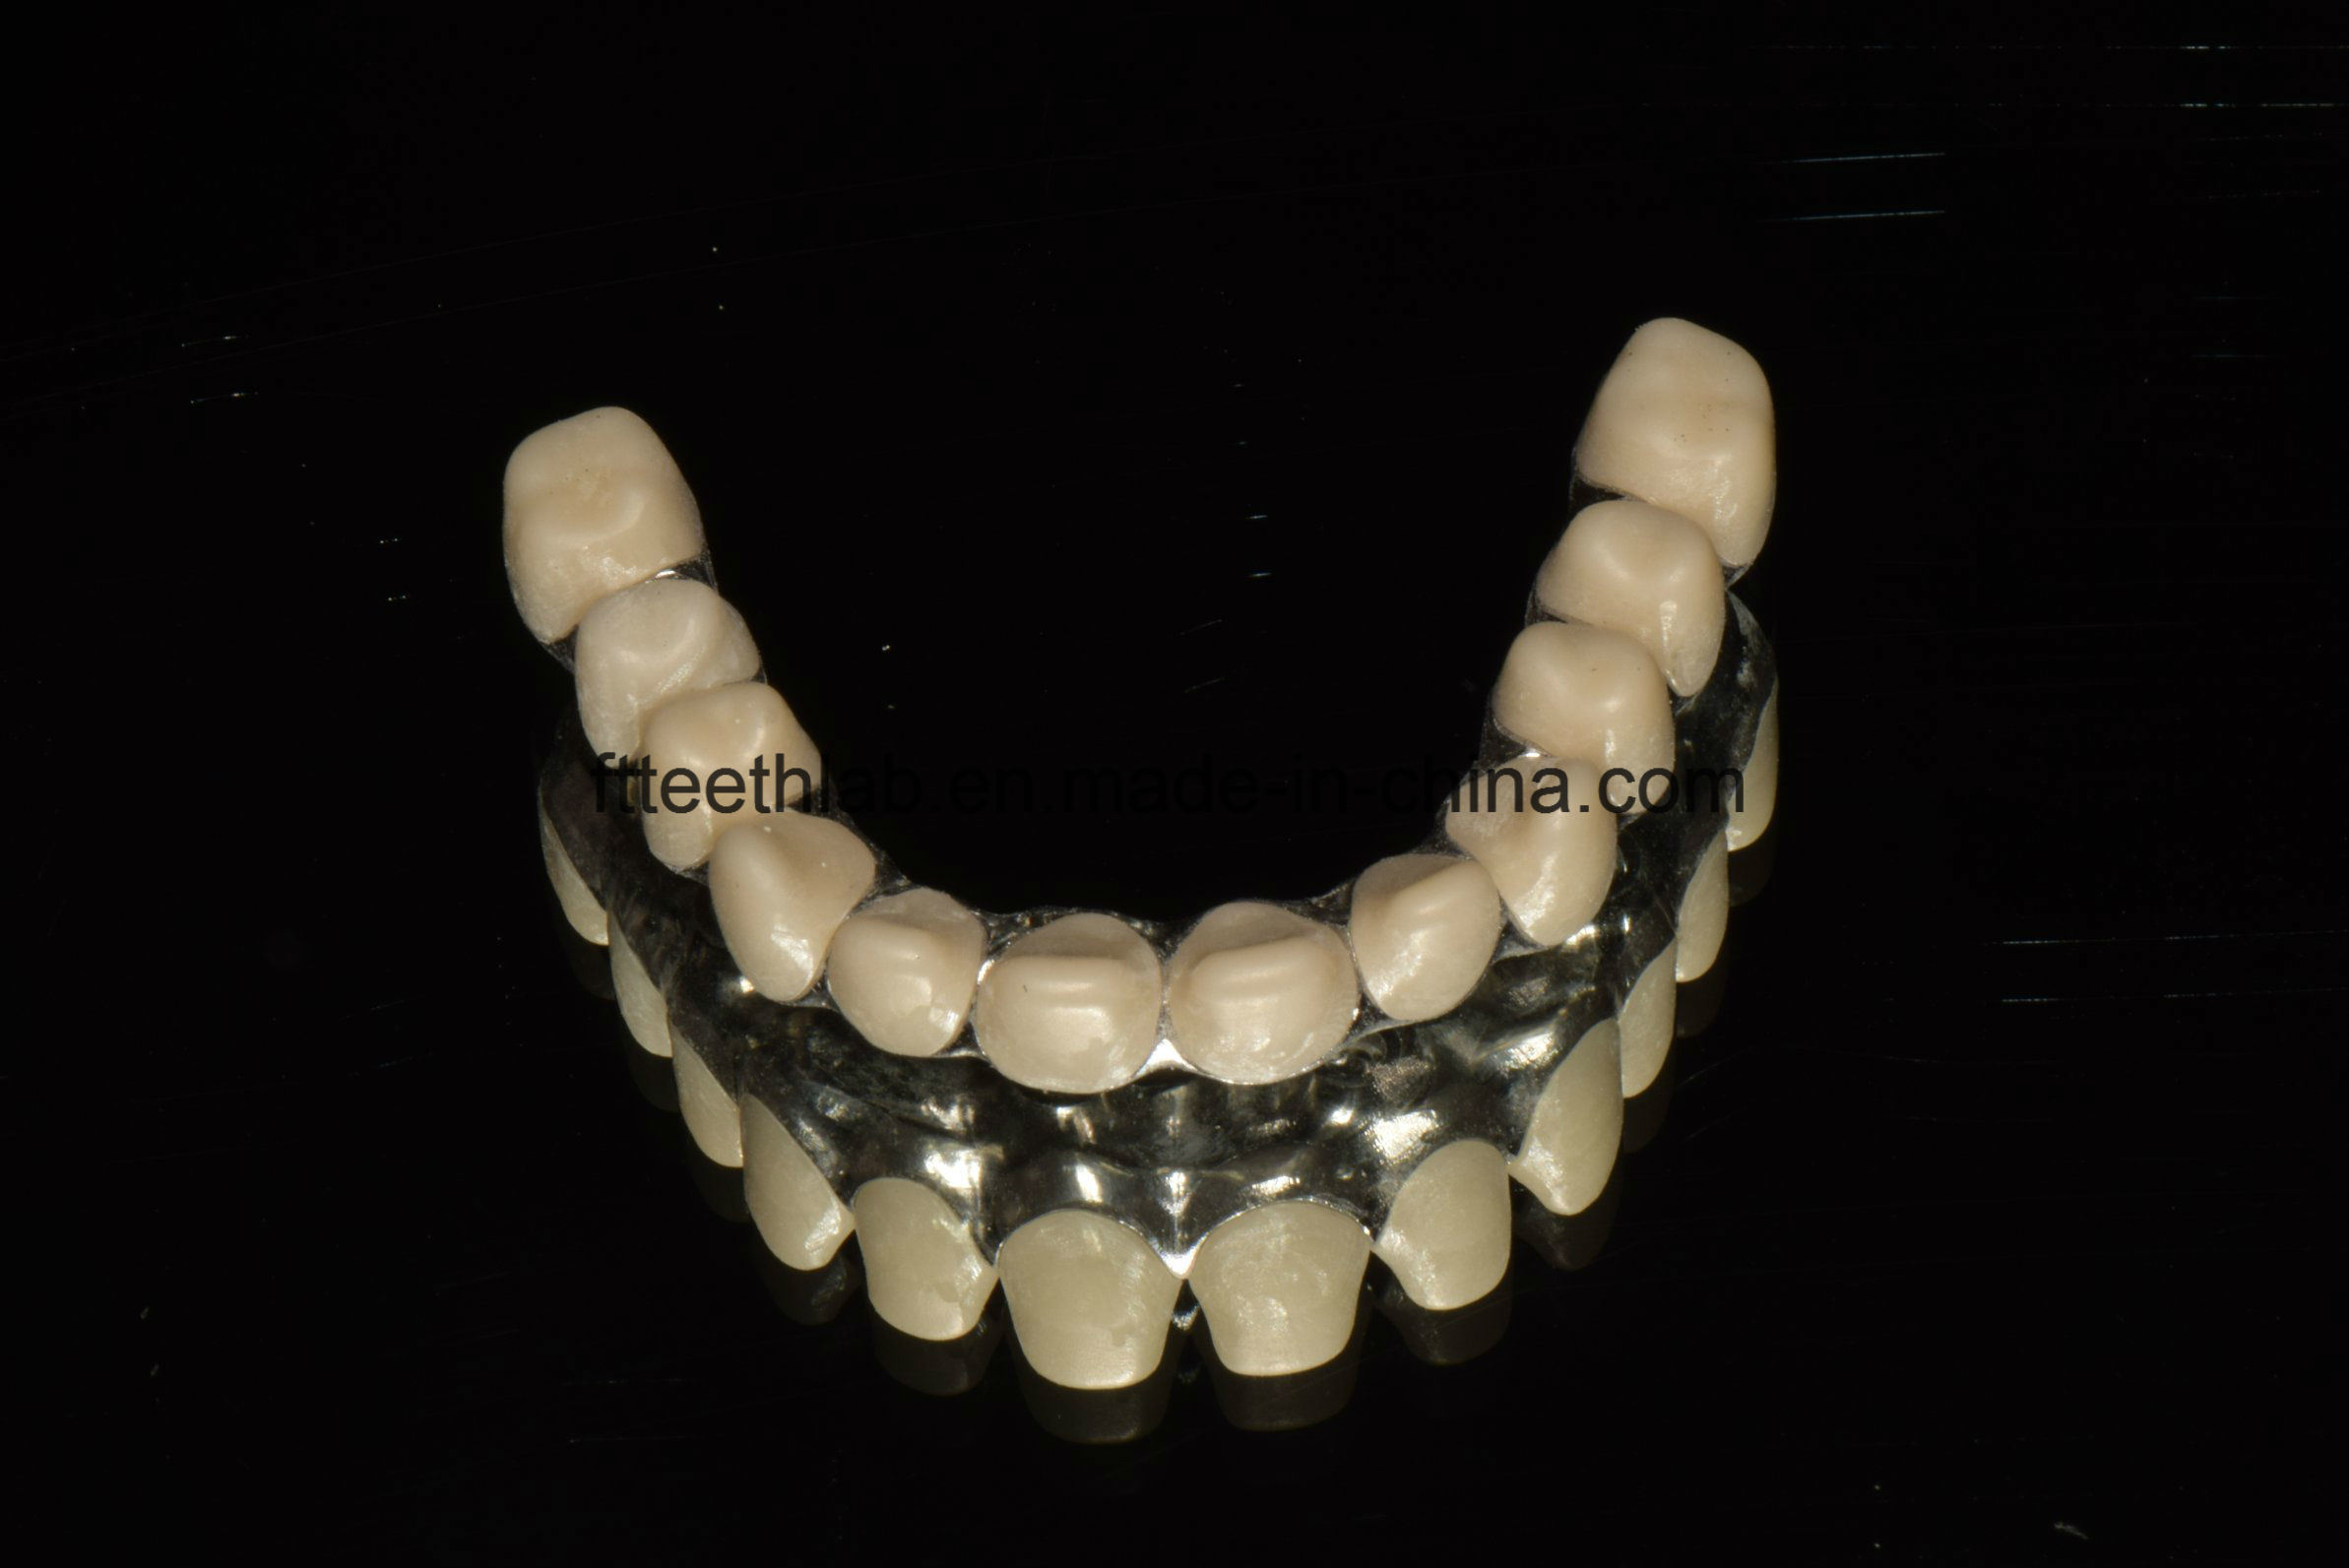 Dental Malo Bridge with Zirconia Crowns From China Dental Lab